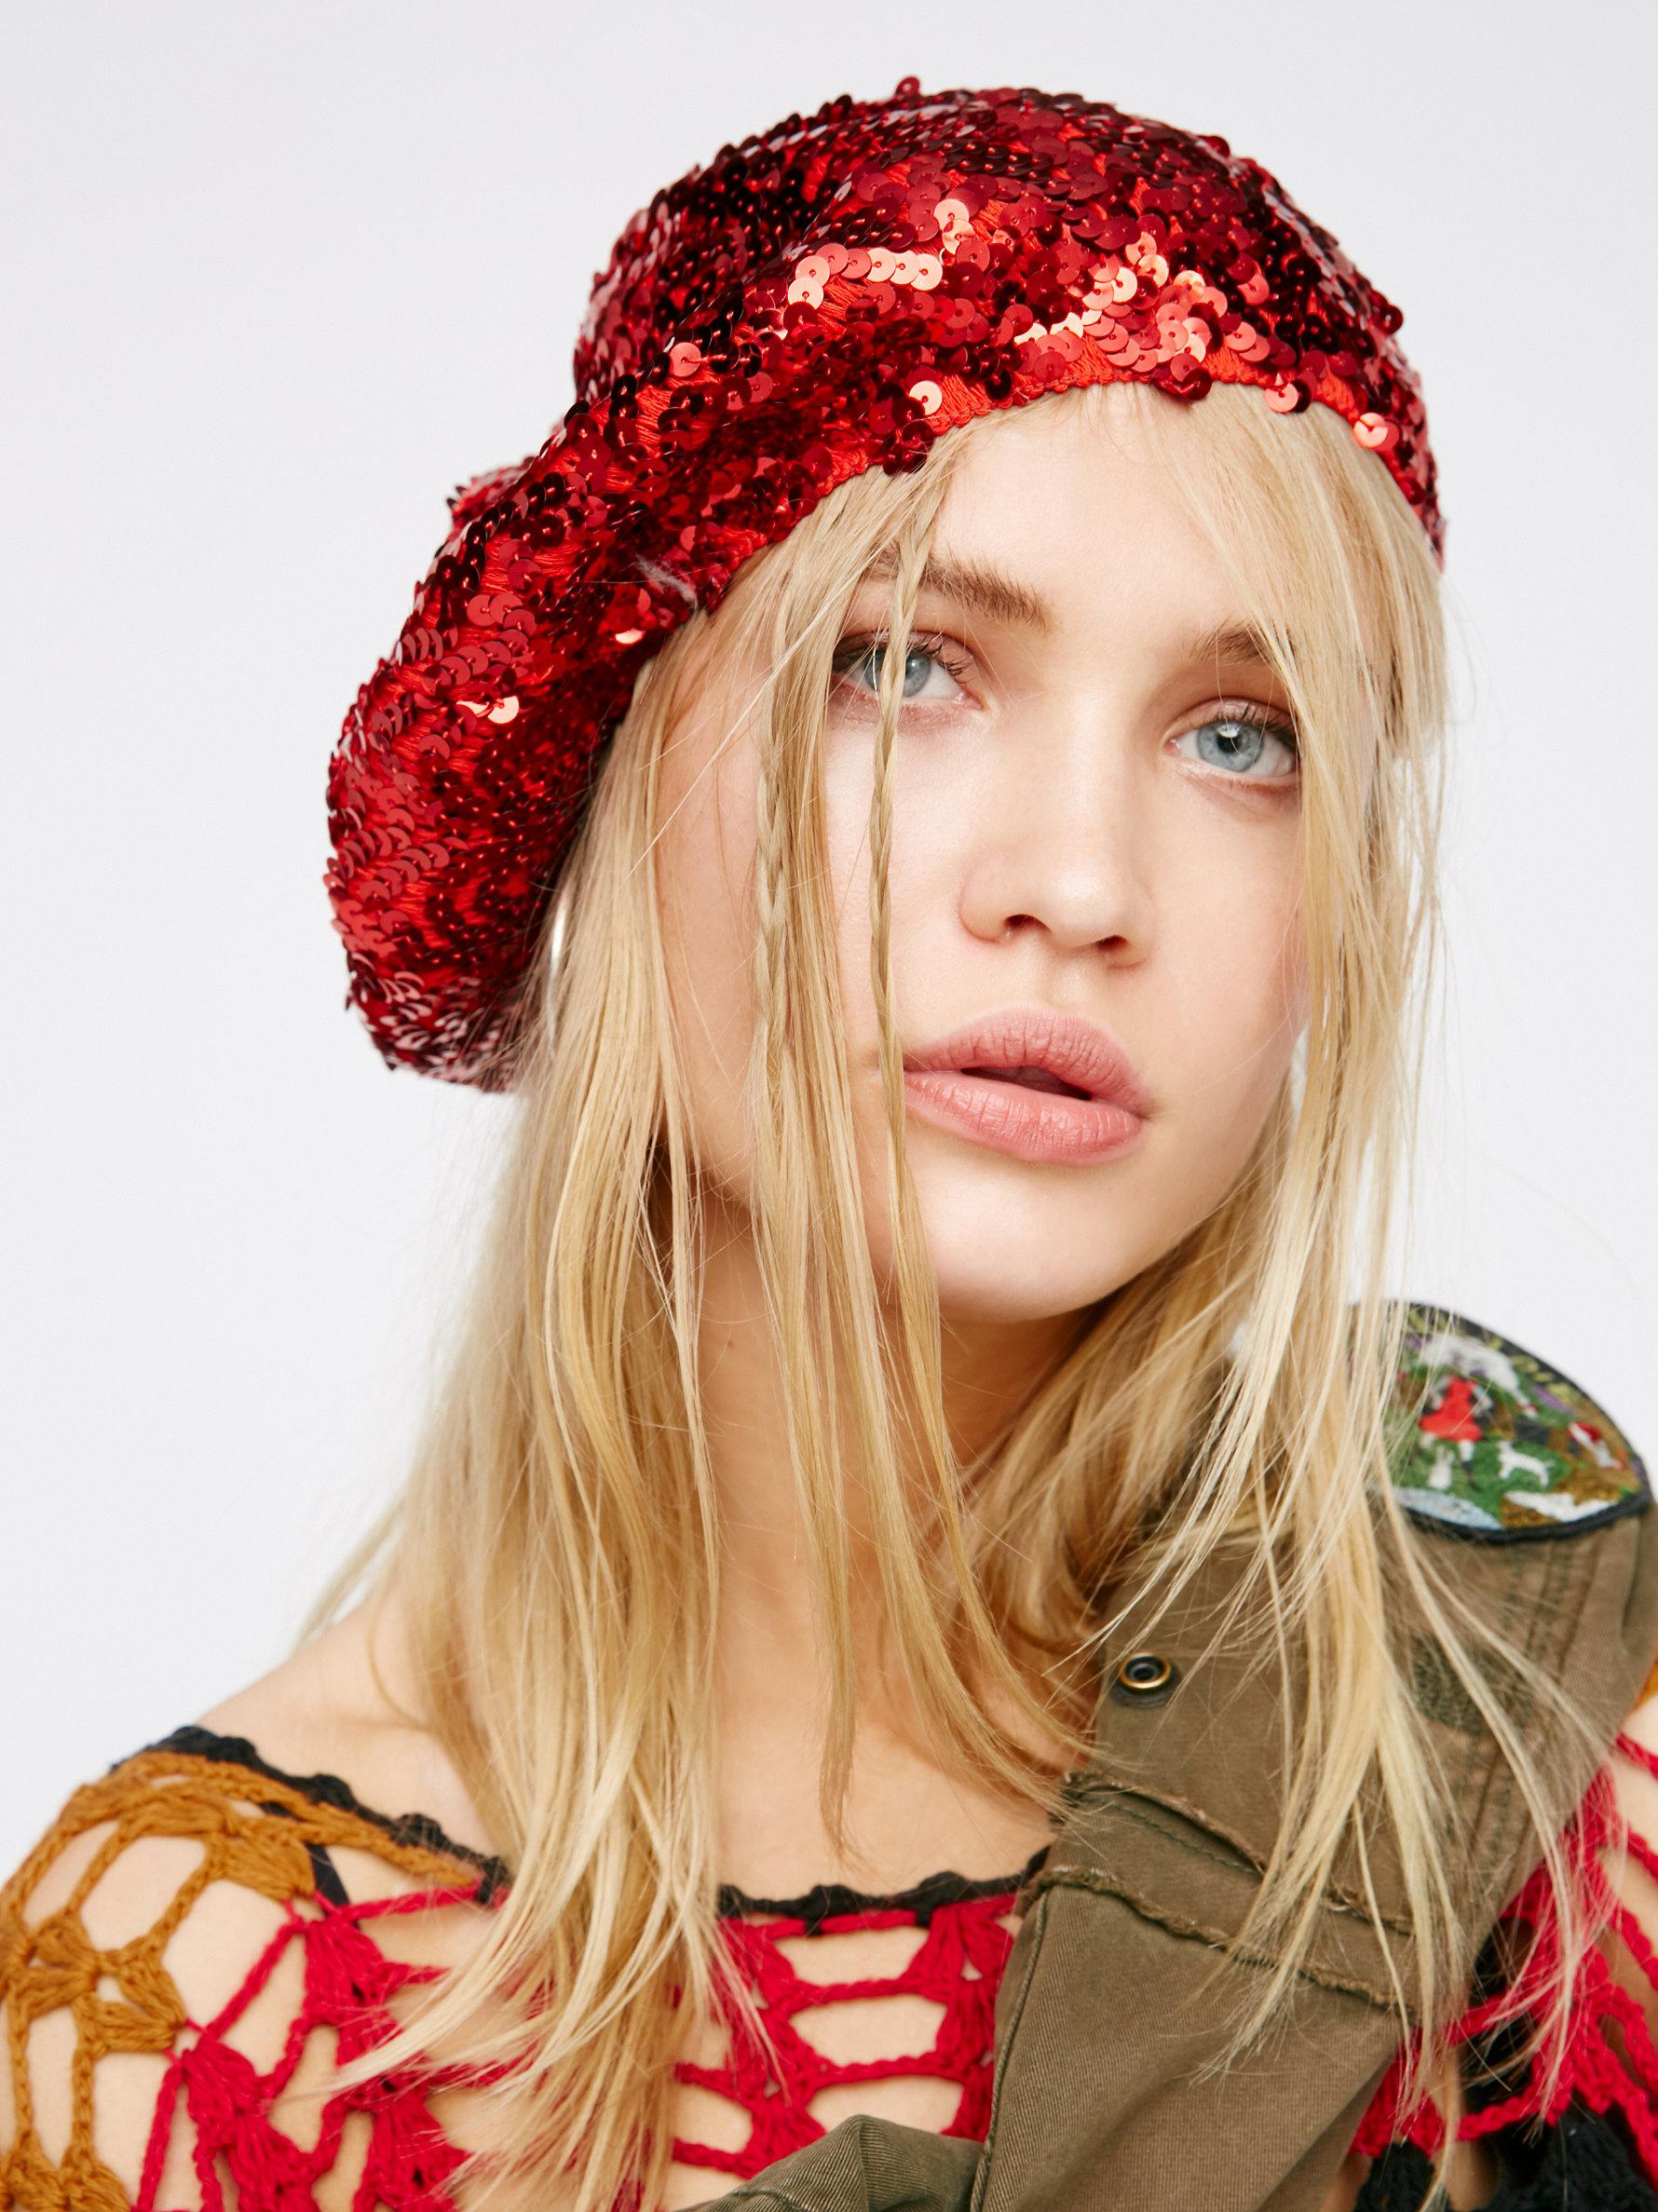 dd1c1e396e5b3 Free People Up All Night Sequin Beret in Red - Lyst